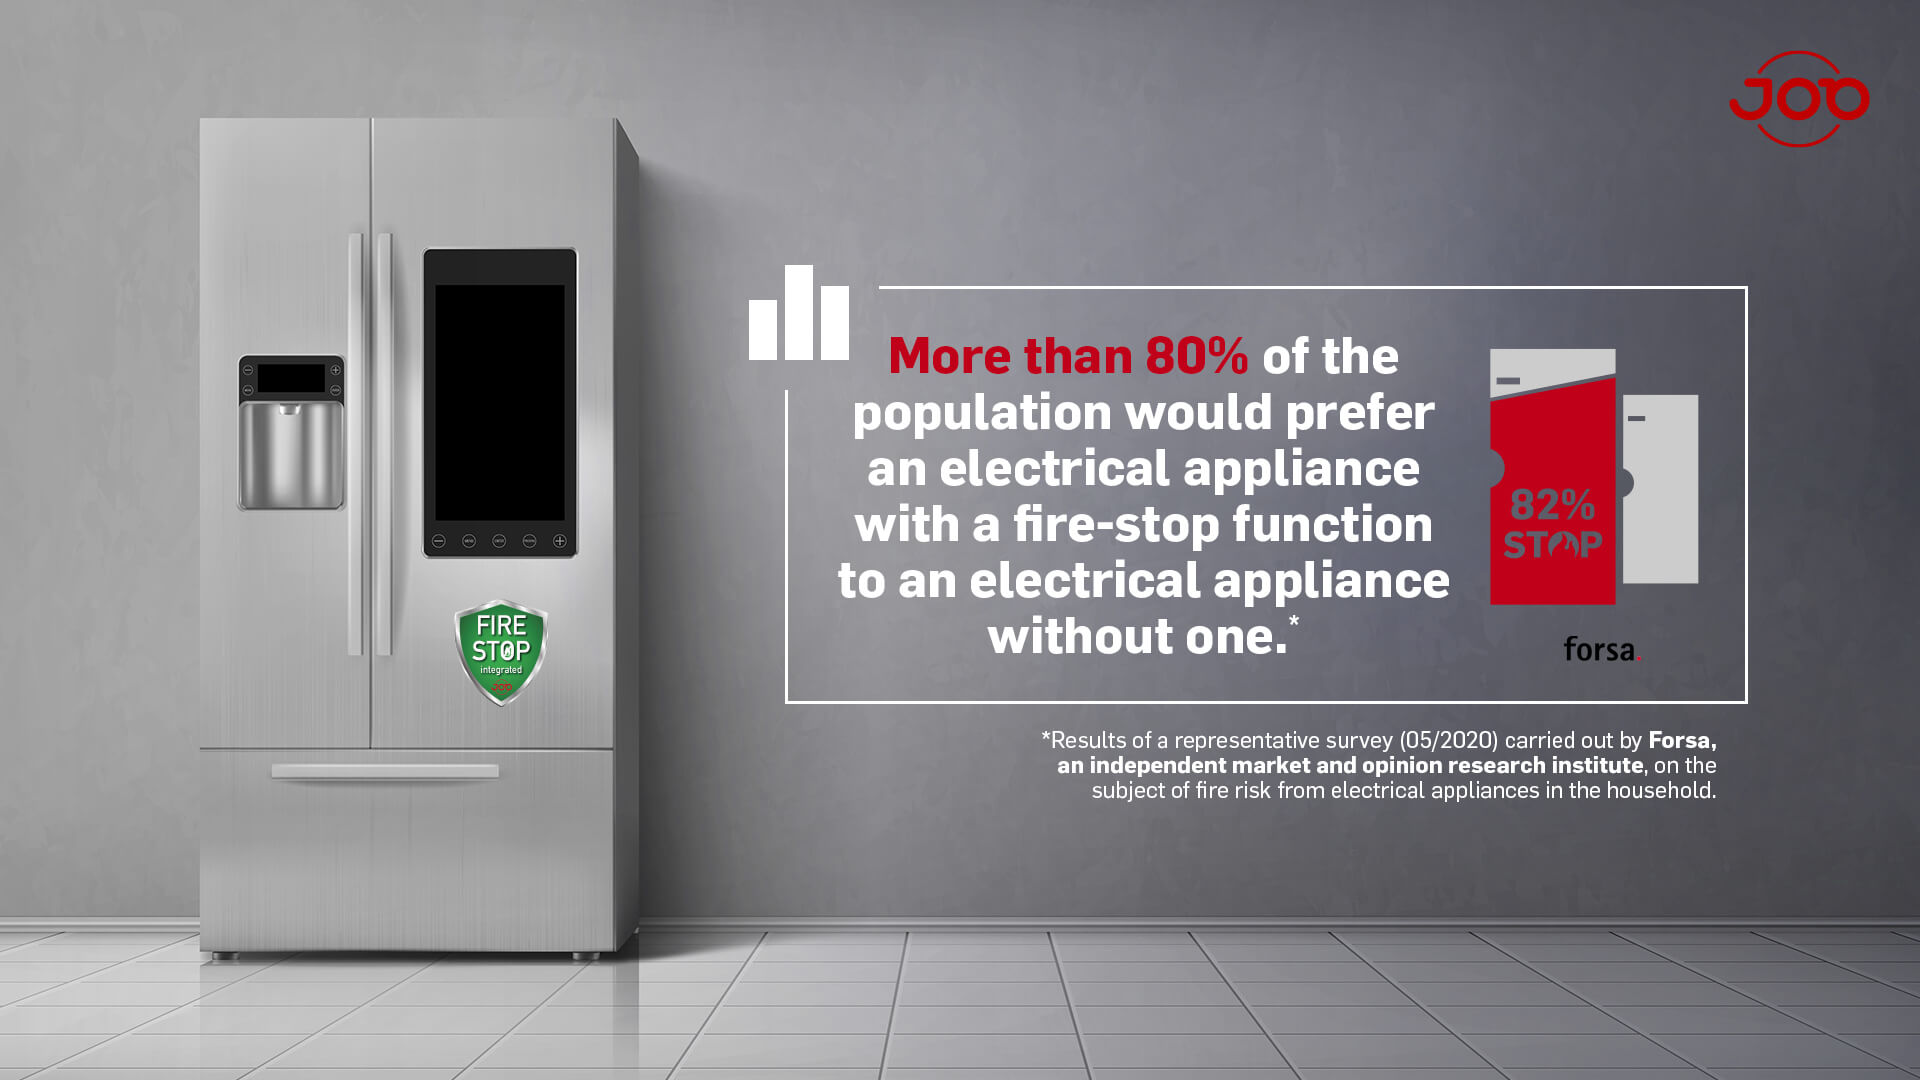 Forsa Survey - integrated fire protection - more than 80% prefer a fire-stop function in electrical appliances